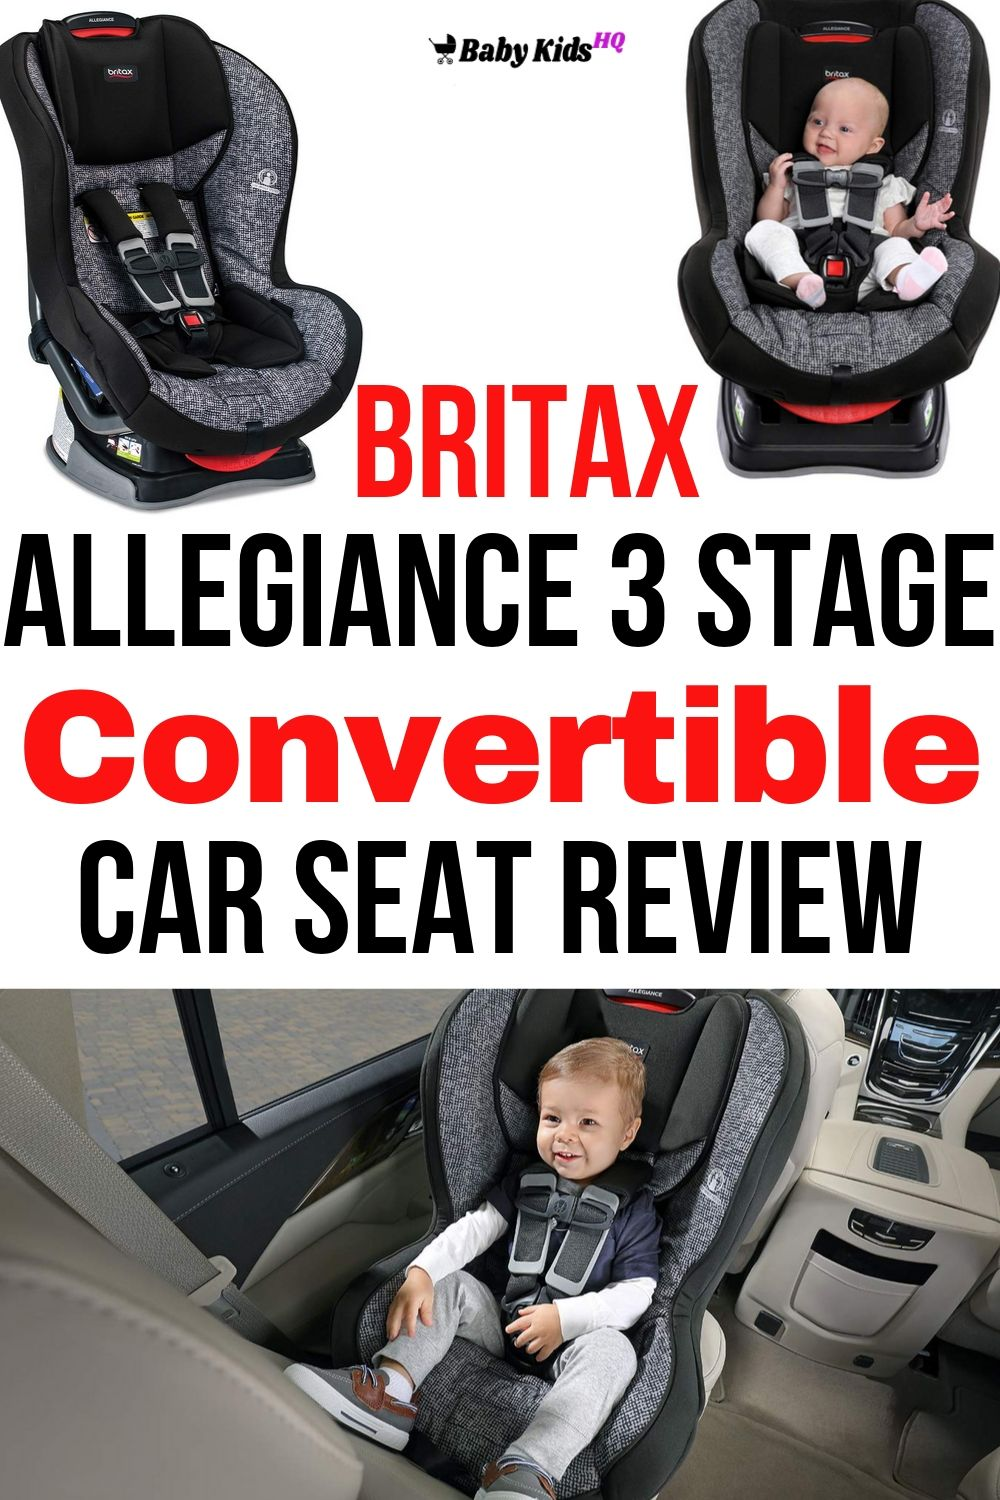 The Britax Allegiance Convertible Car Seat meets federal safety standards to guarantee security and has several key points that provide convenience and value.